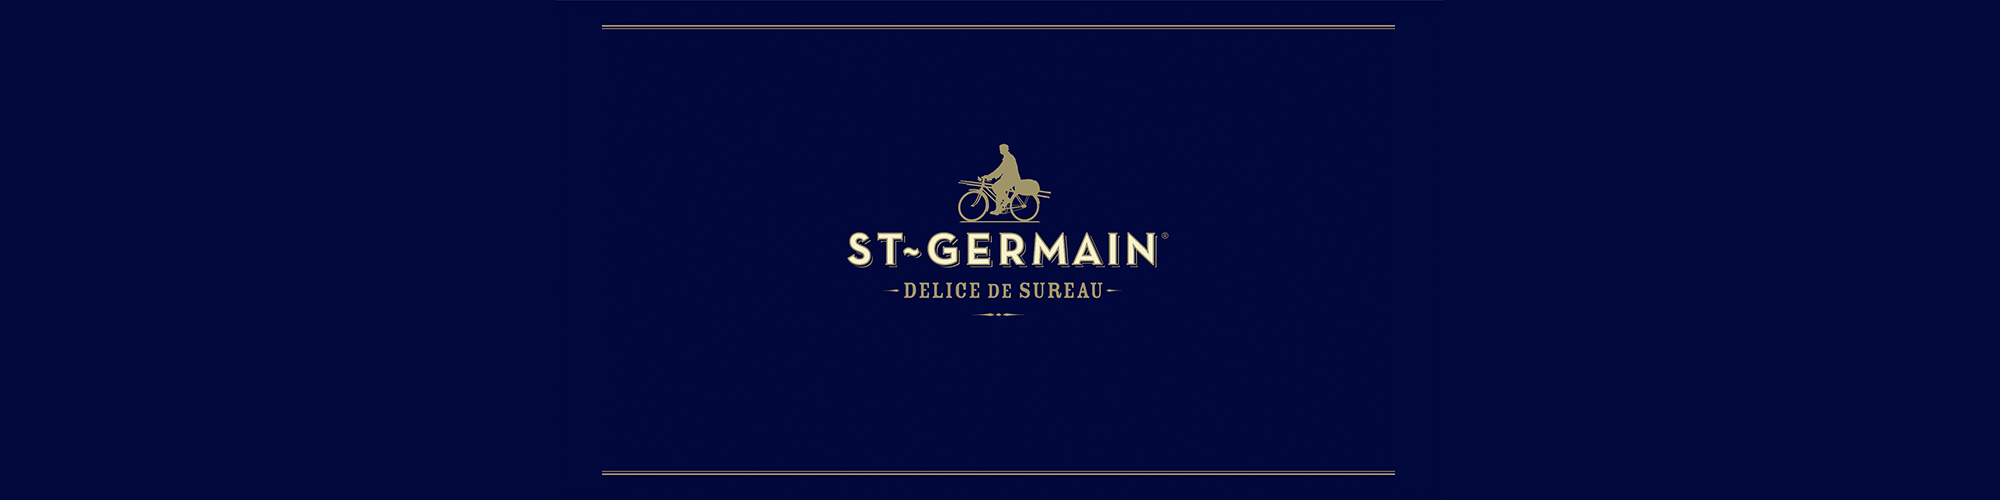 st-germain_hero_2000x500